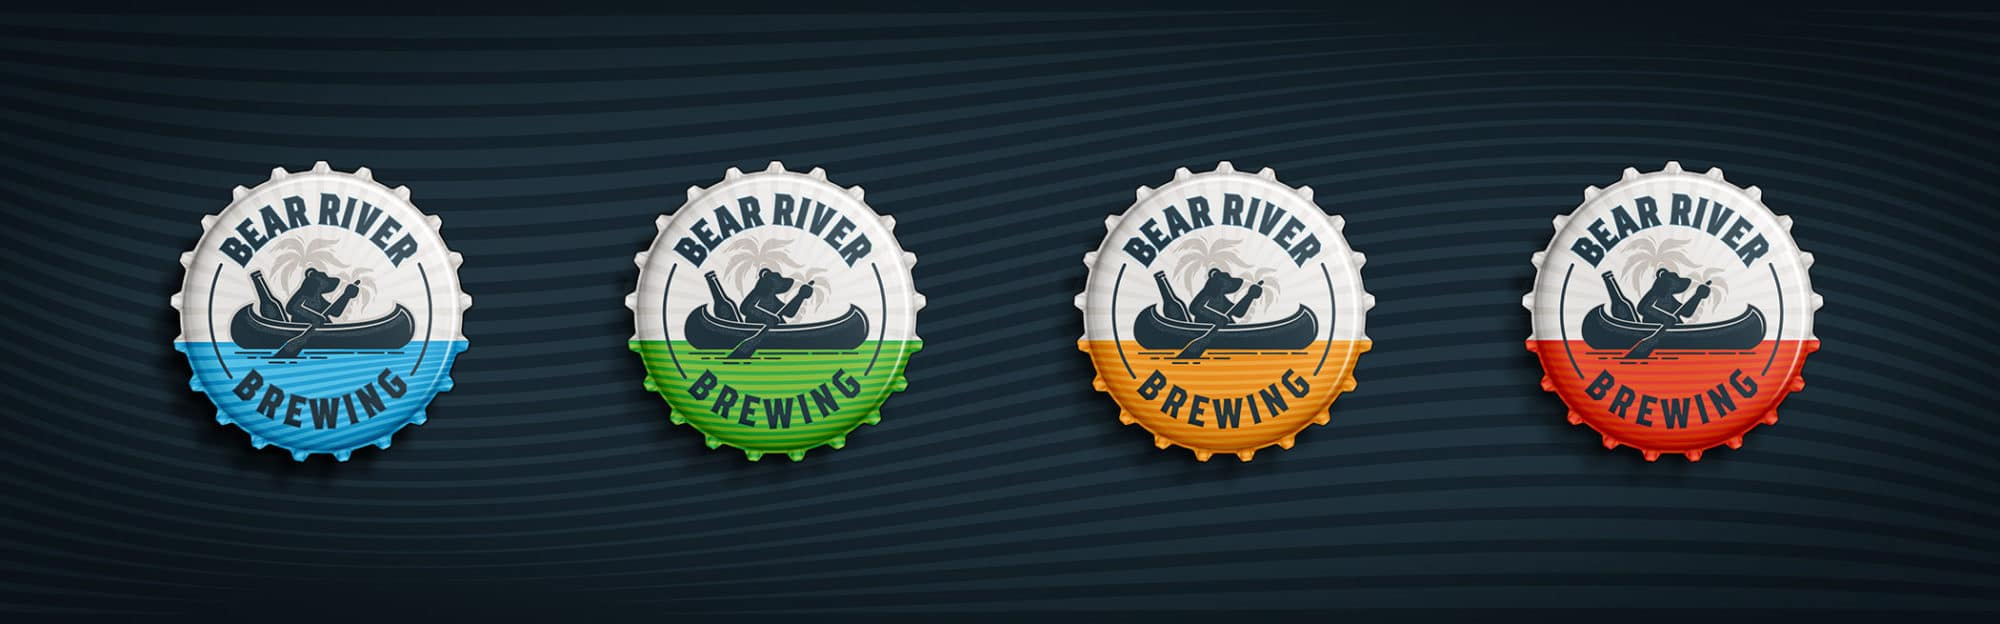 Bear River Brewing beer cap designs